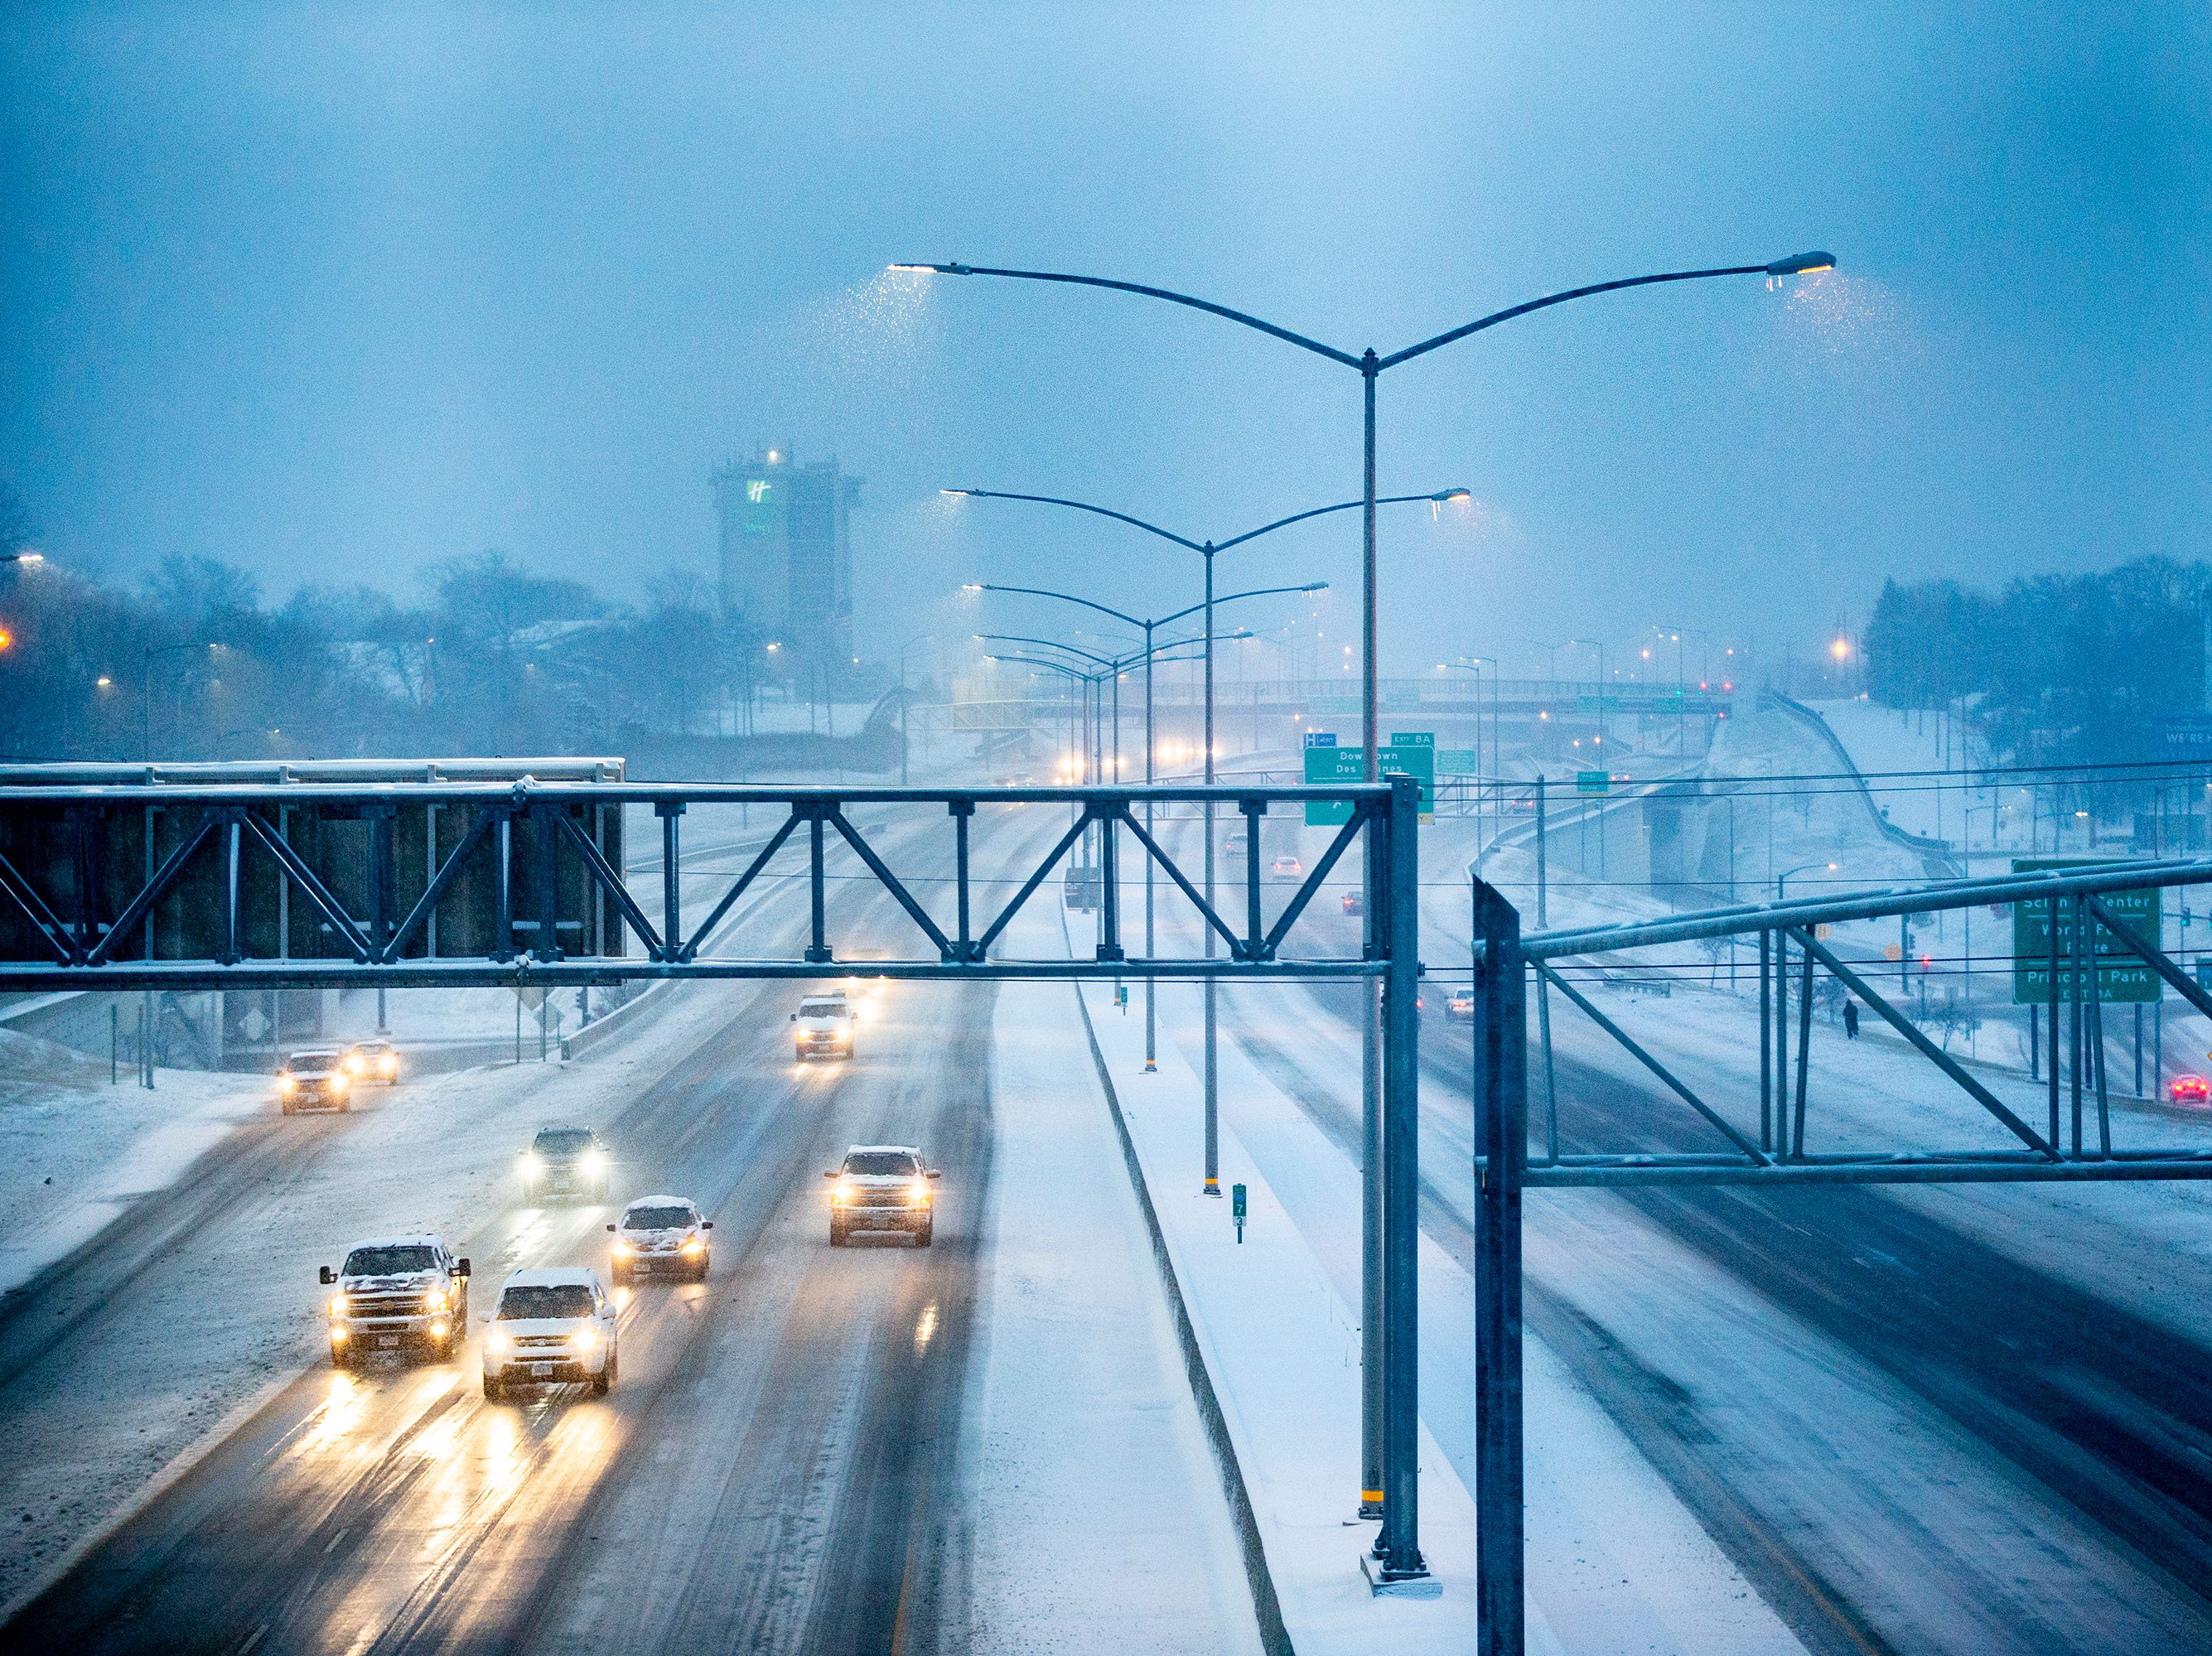 Drivers make their way down a partially snow covered Interstate 235 through downtown Des Moines just before dawn on Saturday, Jan. 12, 2019.